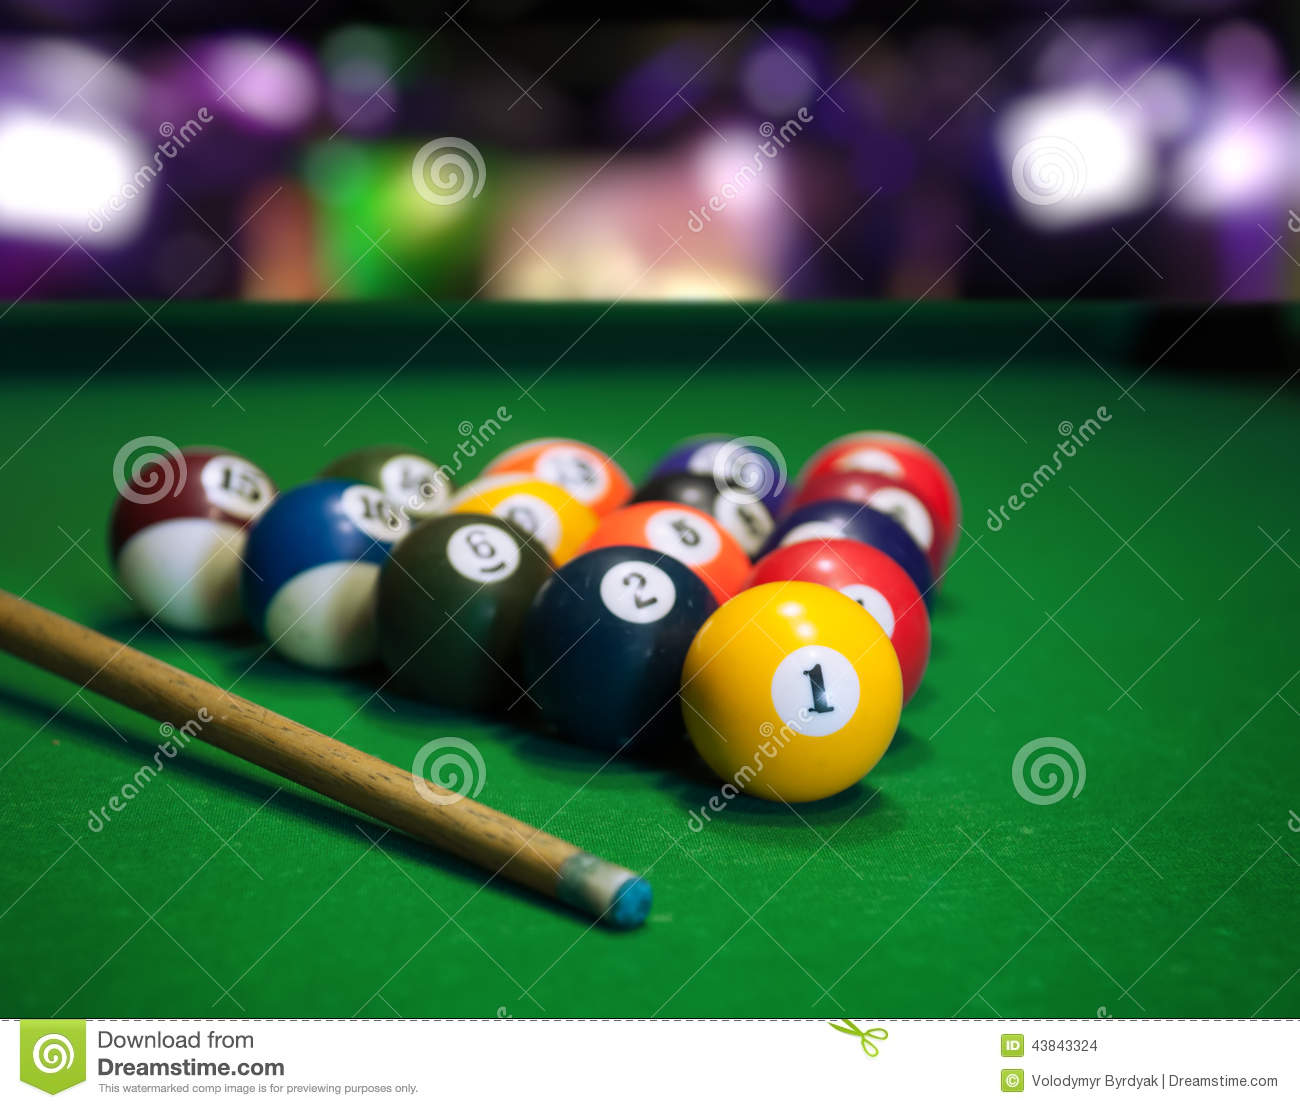 August 2014 Cpo Offers Table Jpg: Billiards Stock Photo. Image Of Activity, Group, Nightlife